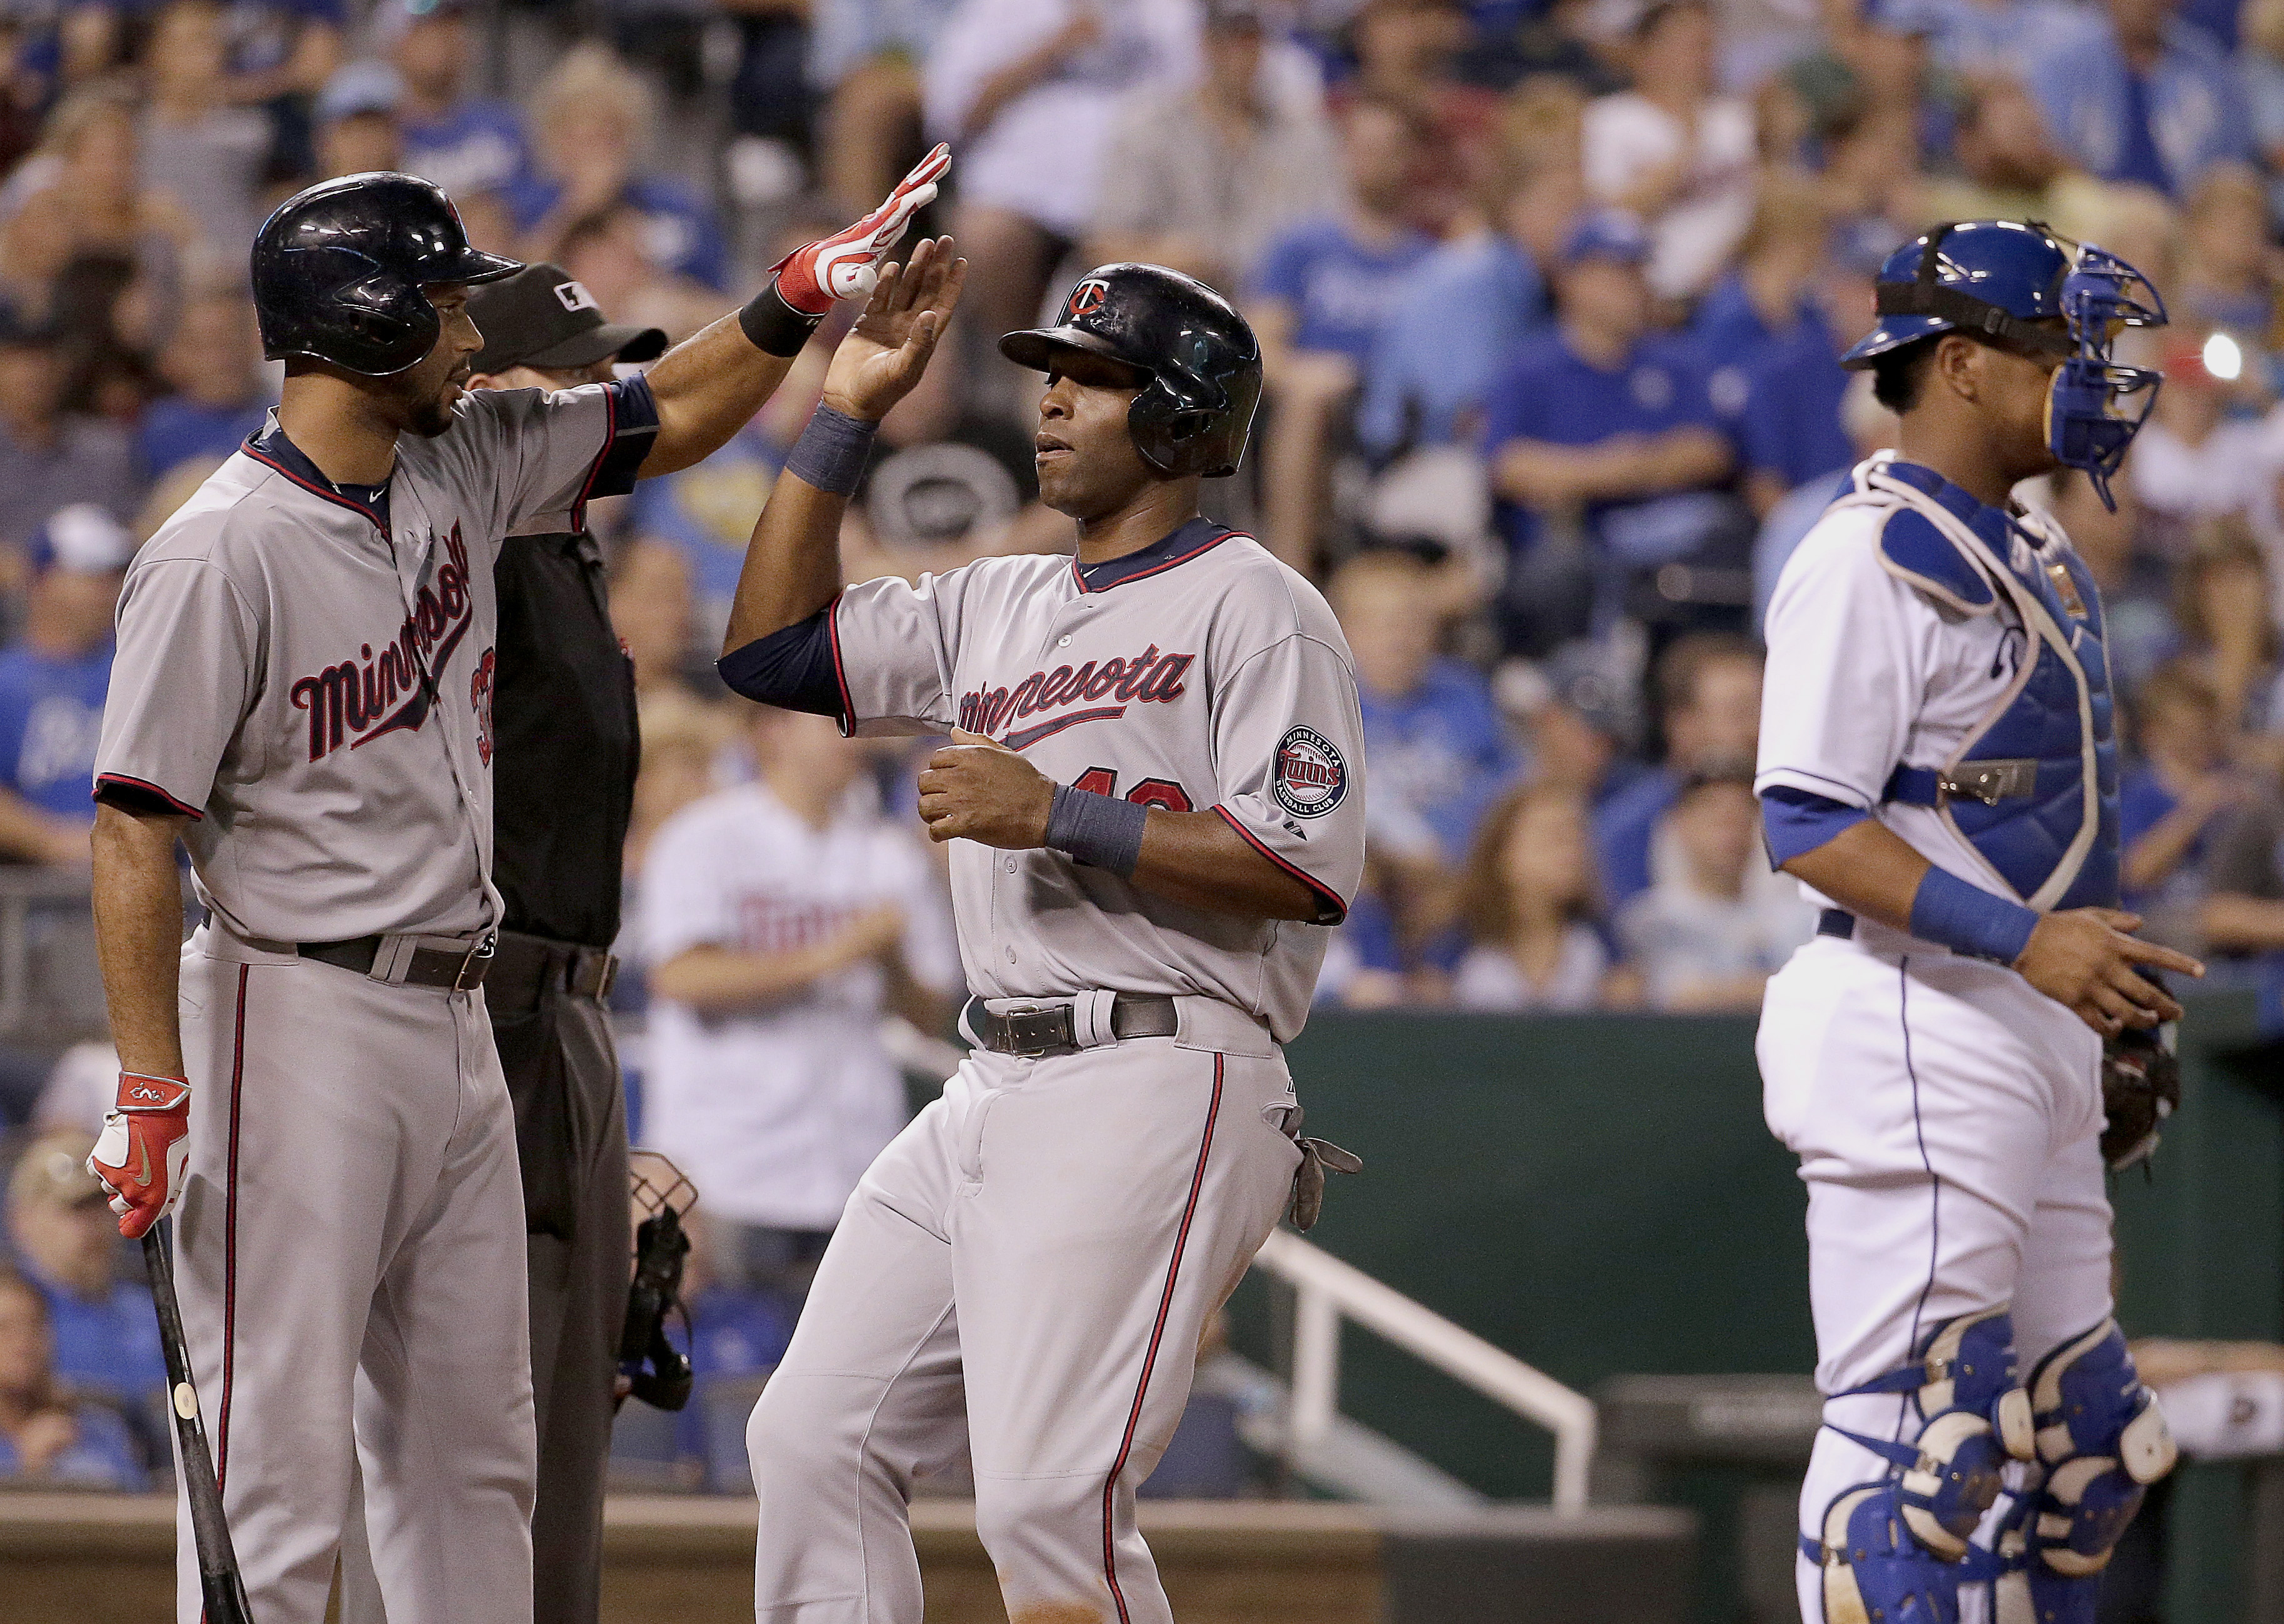 Minnesota Twins' Torii Hunter, center, celebrates with Aaron Hicks after Hunter scored on a single by Eduardo Escobar during the sixth inning of a baseball game against the Kansas City Royals, Monday, Sept. 7, 2015, in Kansas City, Mo. (AP Photo/Charlie R